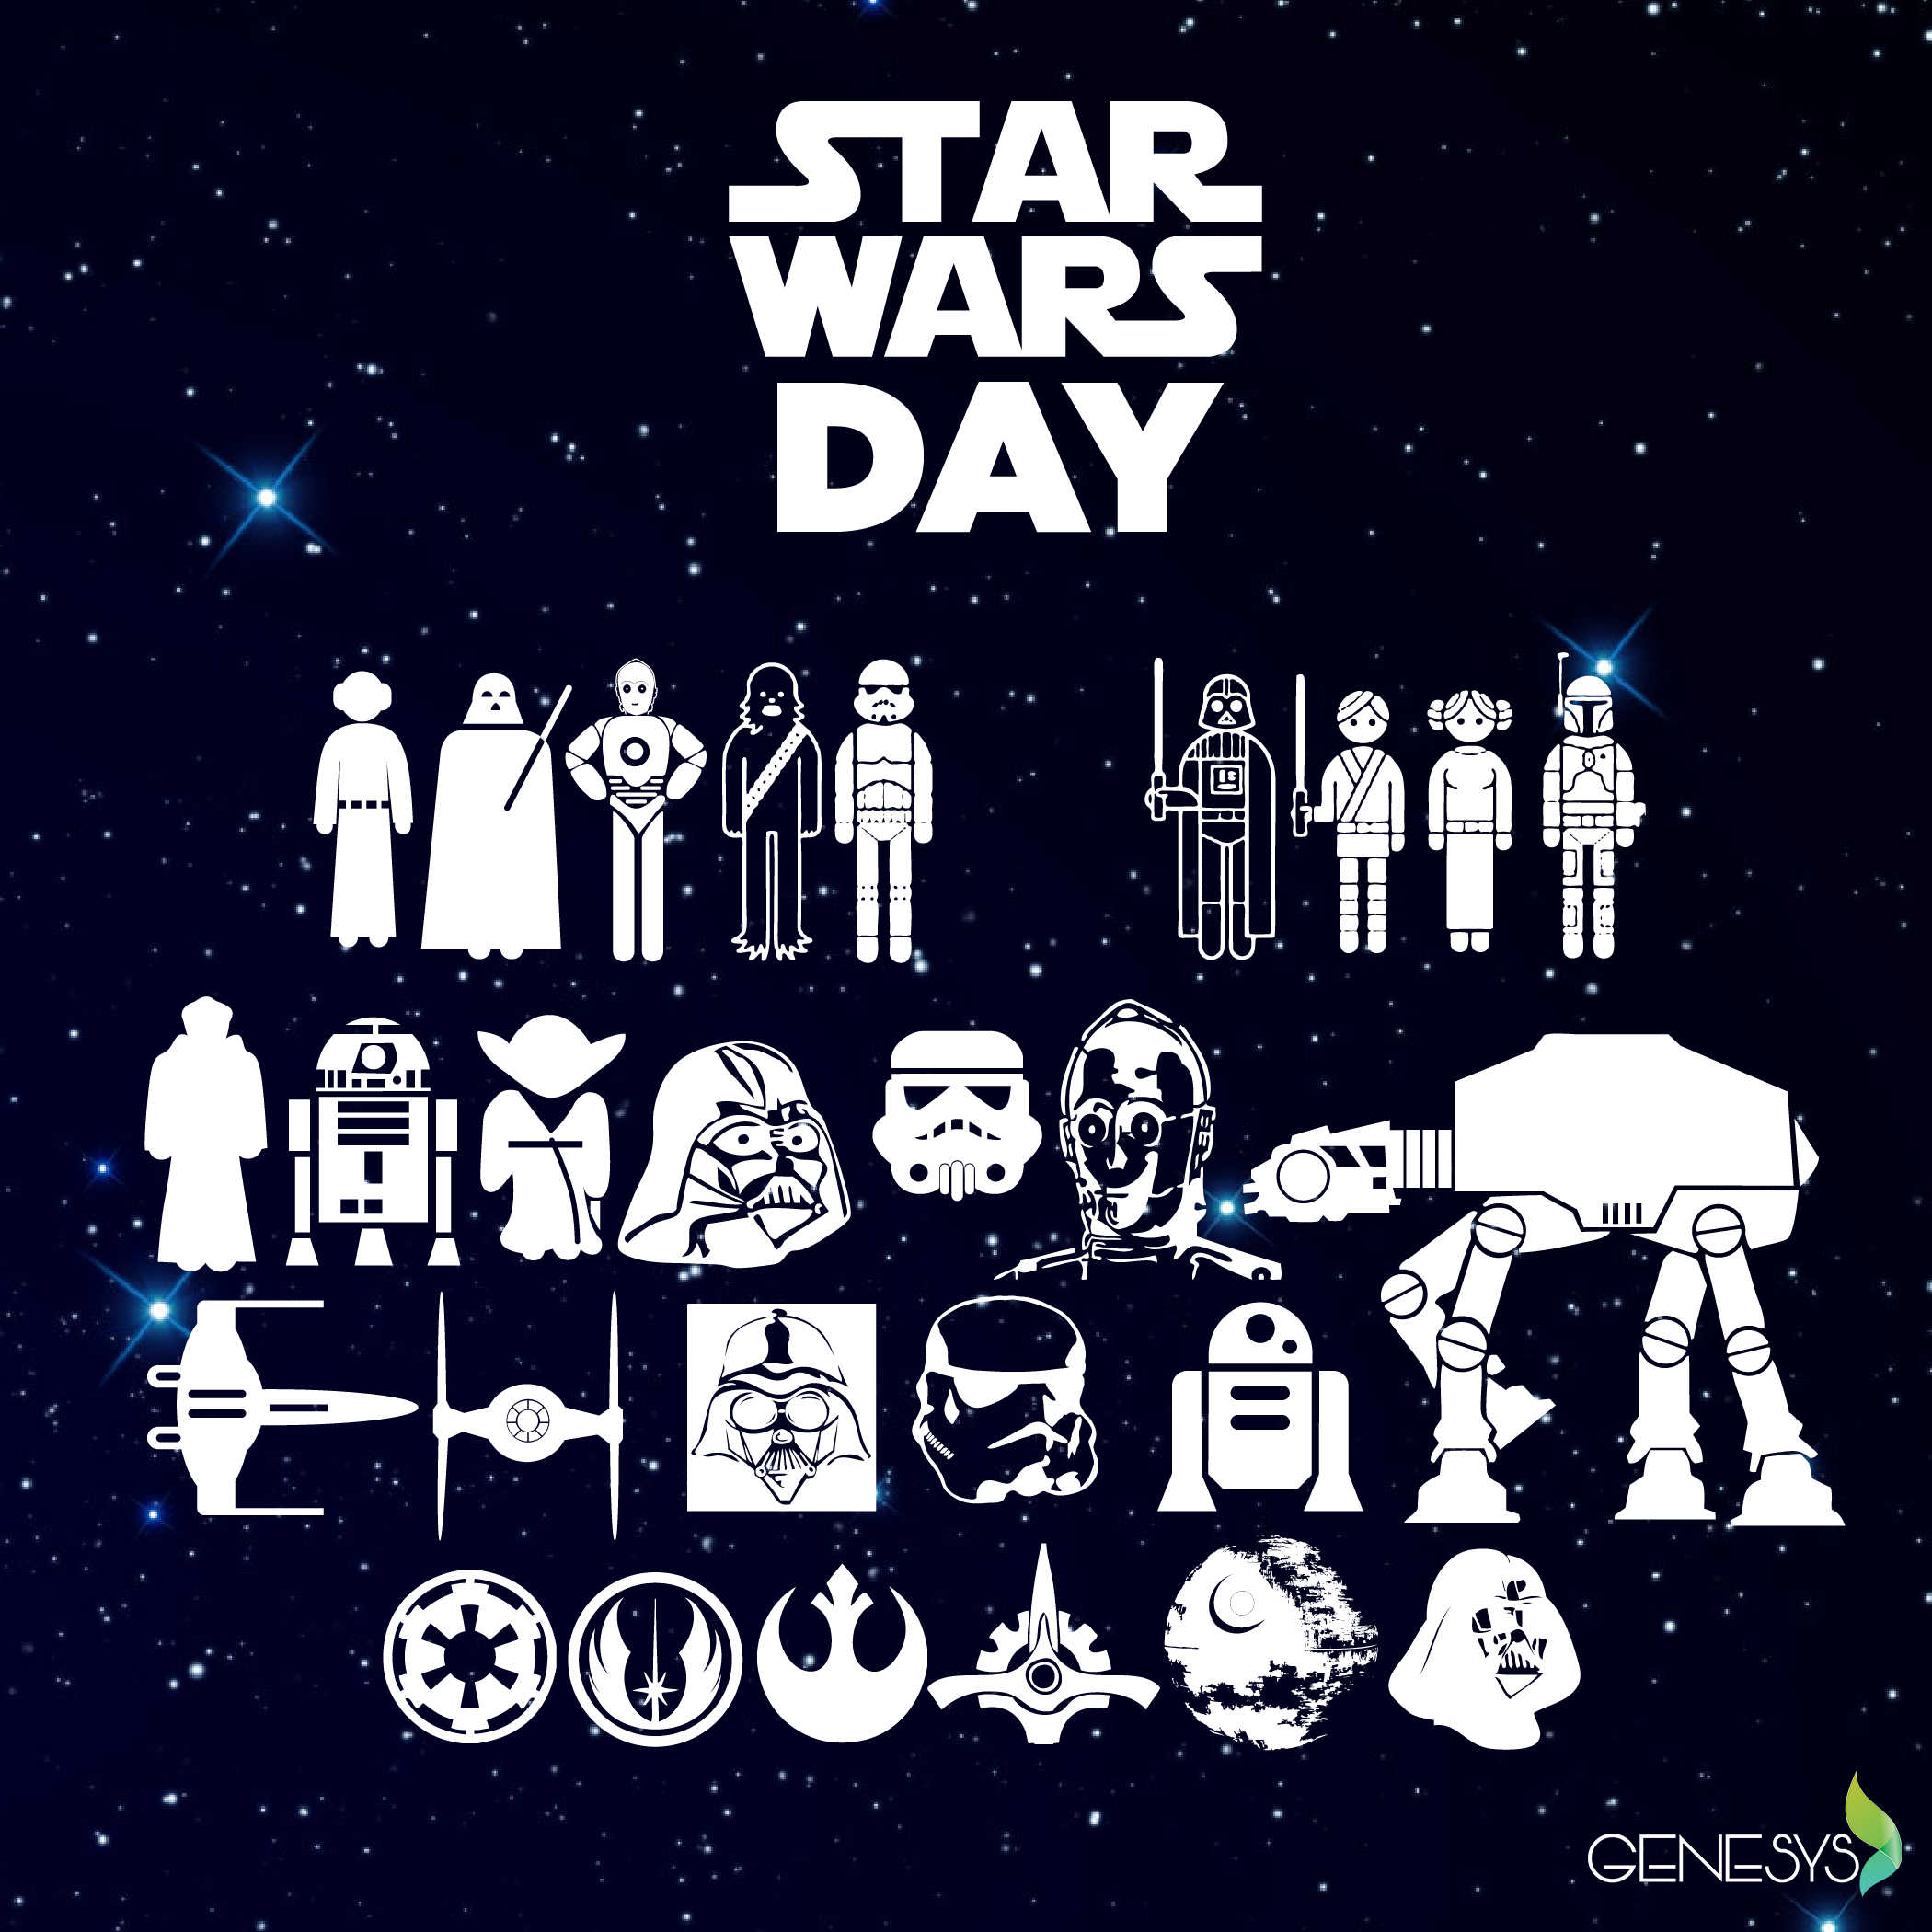 May The 4th Be With You! May 4th Has Become Commonly Known